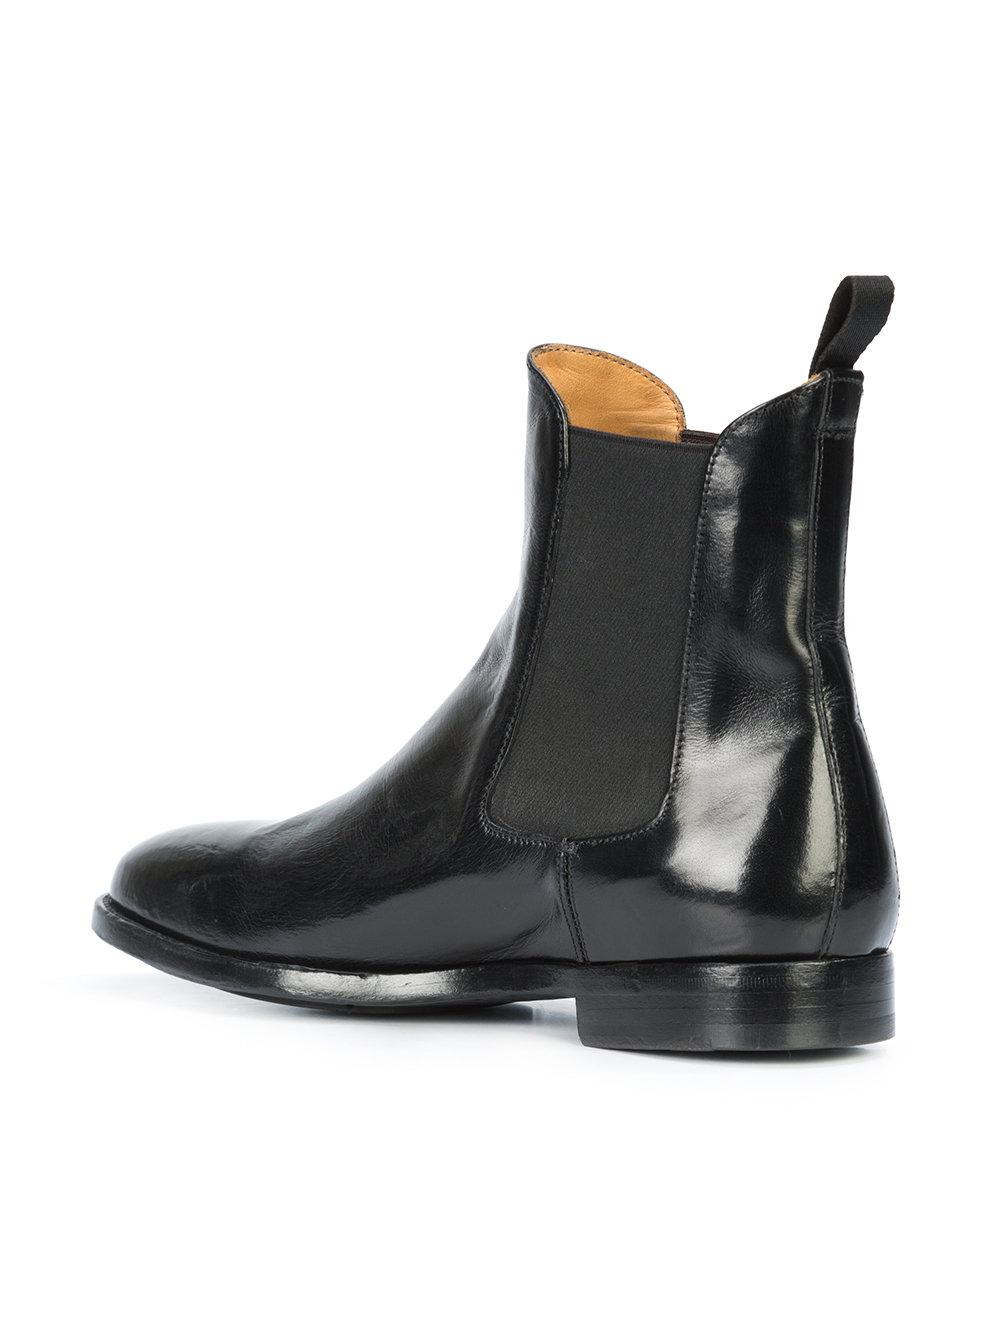 Officine Creative Leather Ankle Length Boots in Black